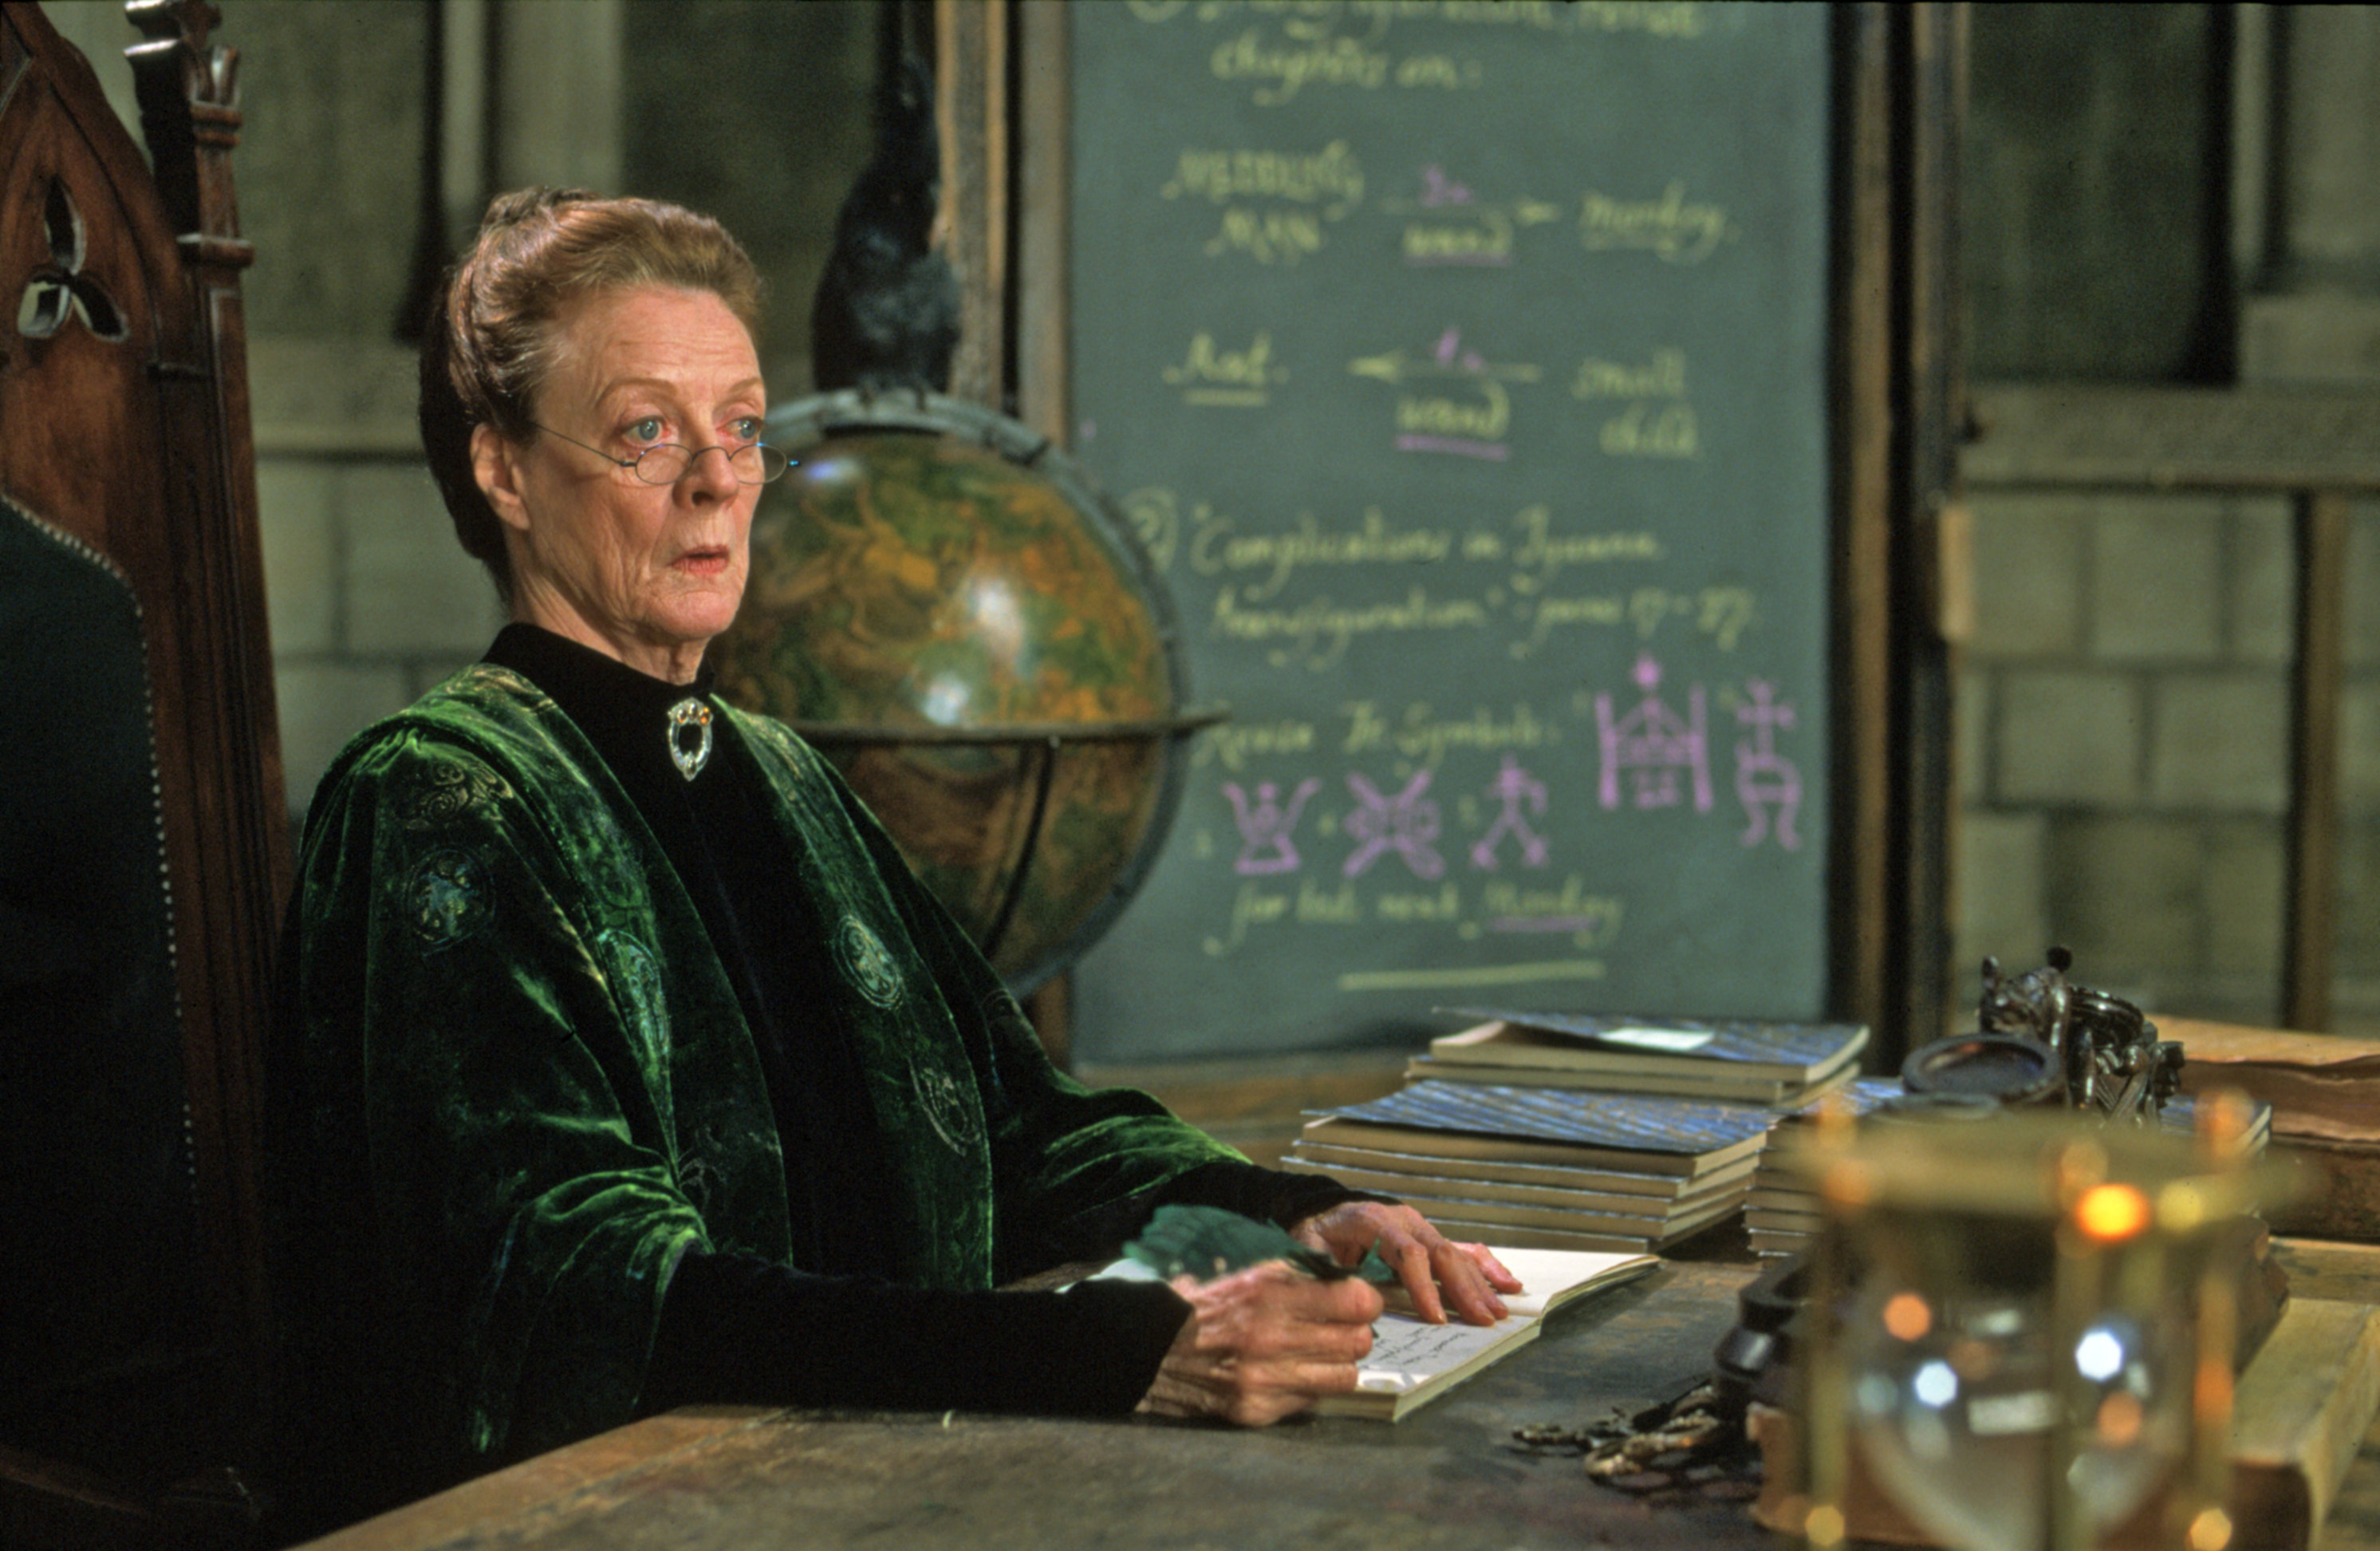 McGonagall at her desk from the Chamber of Secrets